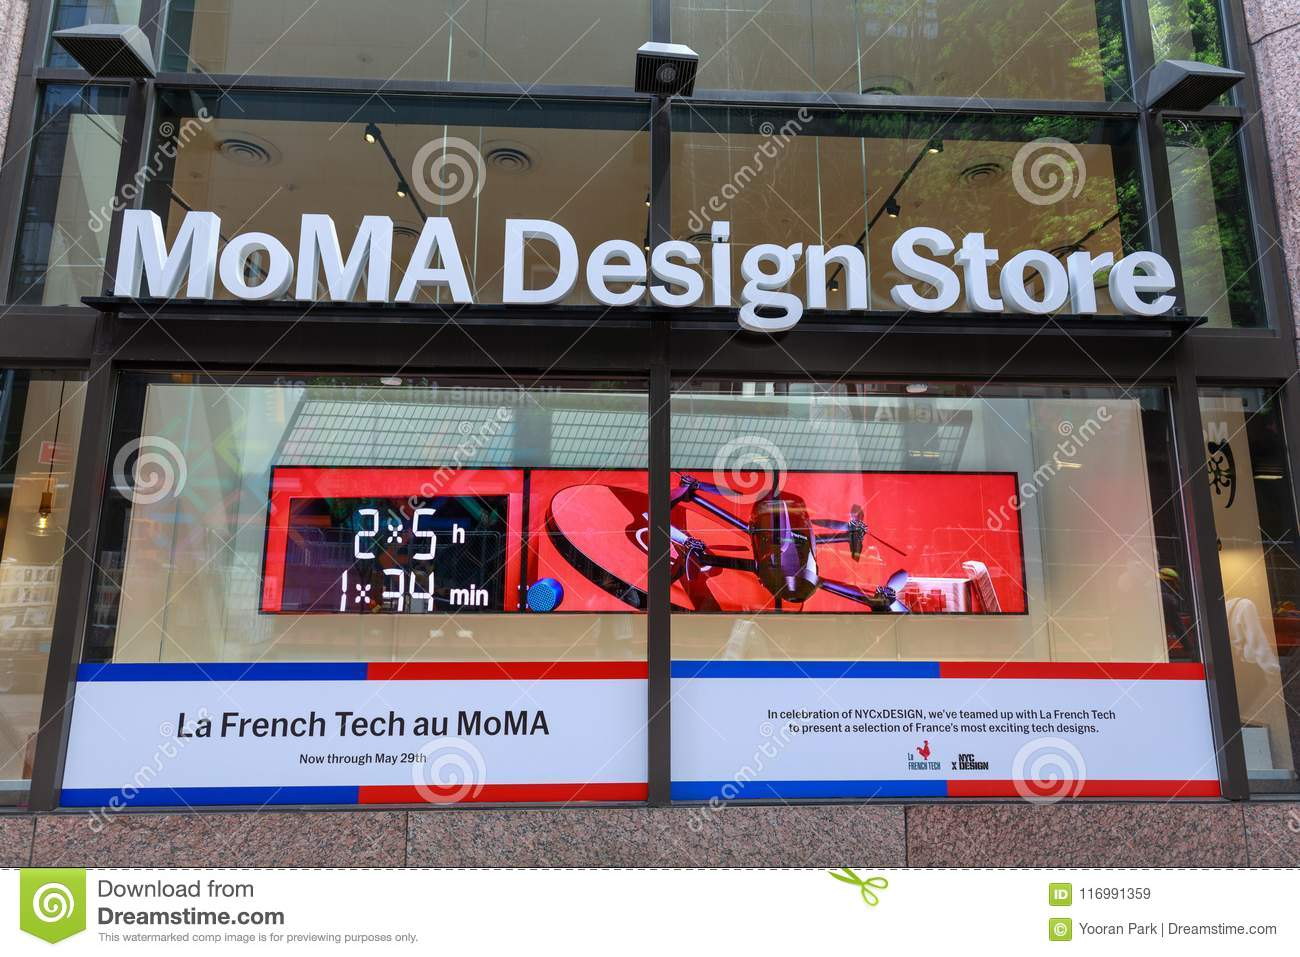 Sign Of MoMa Design Store In Manhattan, NYC Stock Image - Image of ...